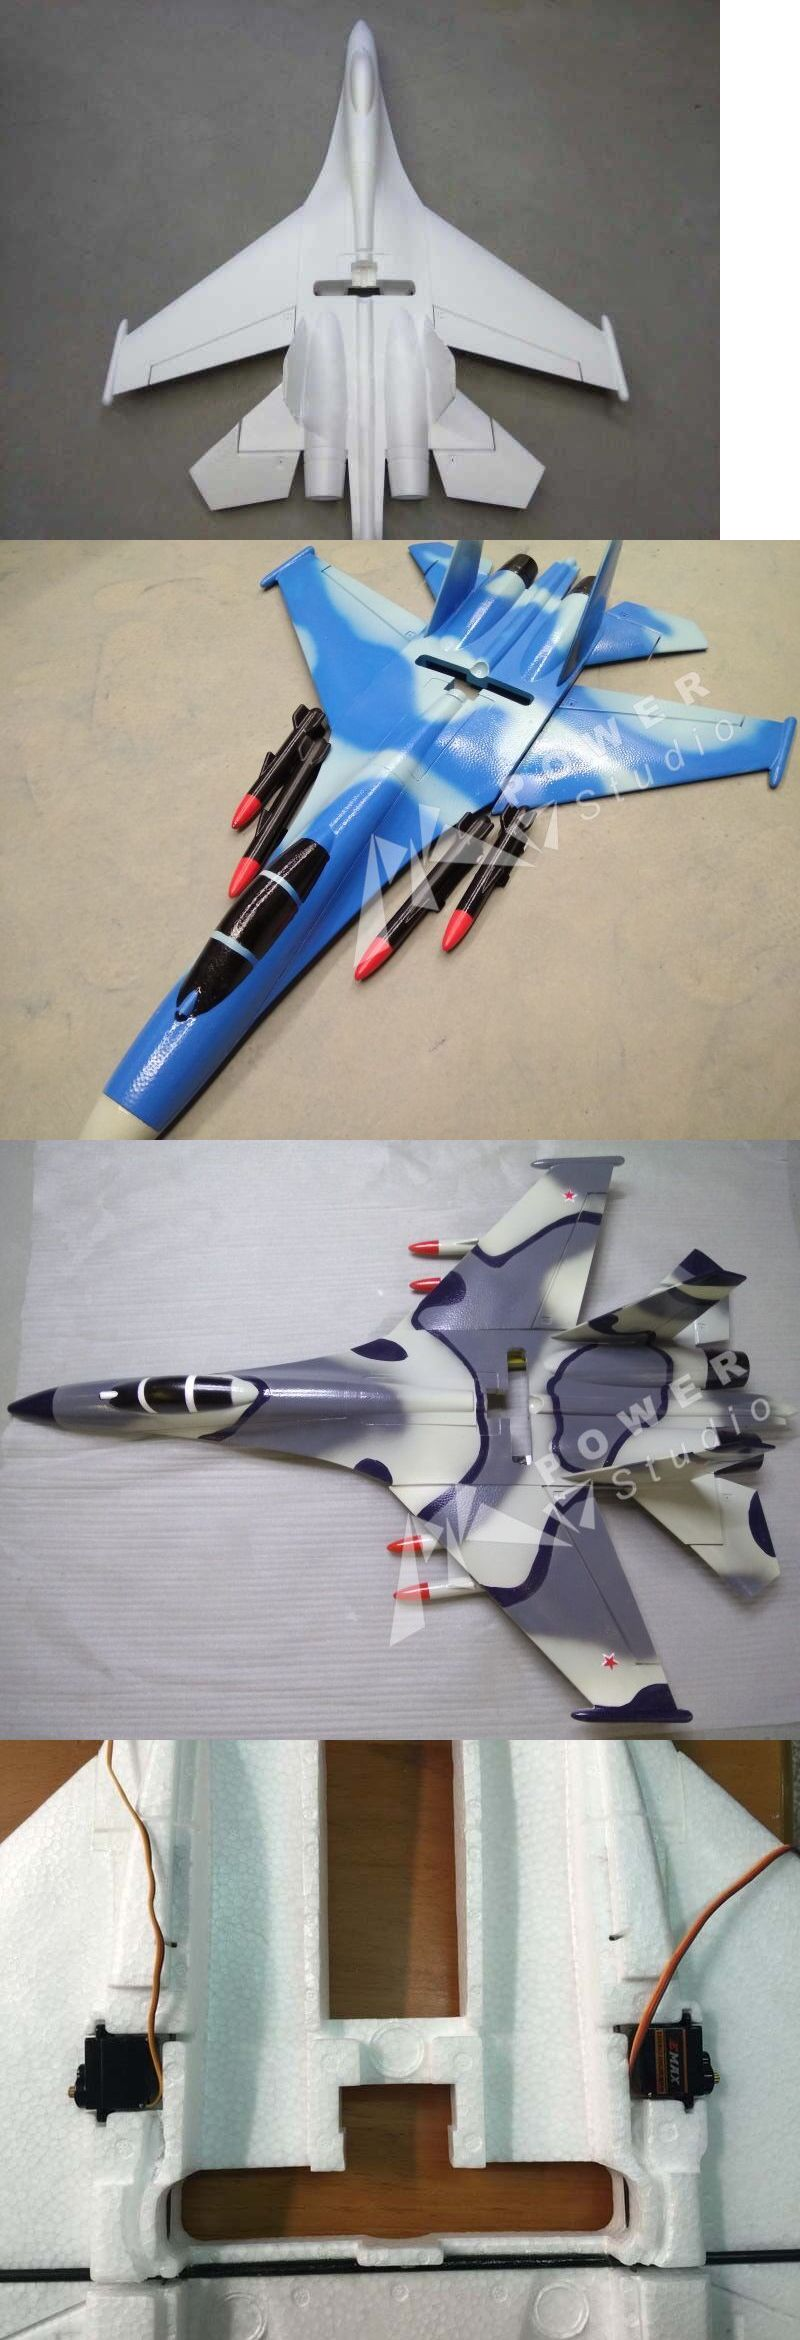 RC Model Vehicles and Kits 182181: 28In Sukhoi Su-27 35 720Mm Wingspan Epo Pusher Jet Fighter Rc Plane Unpainted -\u003e BUY IT NOW ONLY: $25 on #eBay #model ...